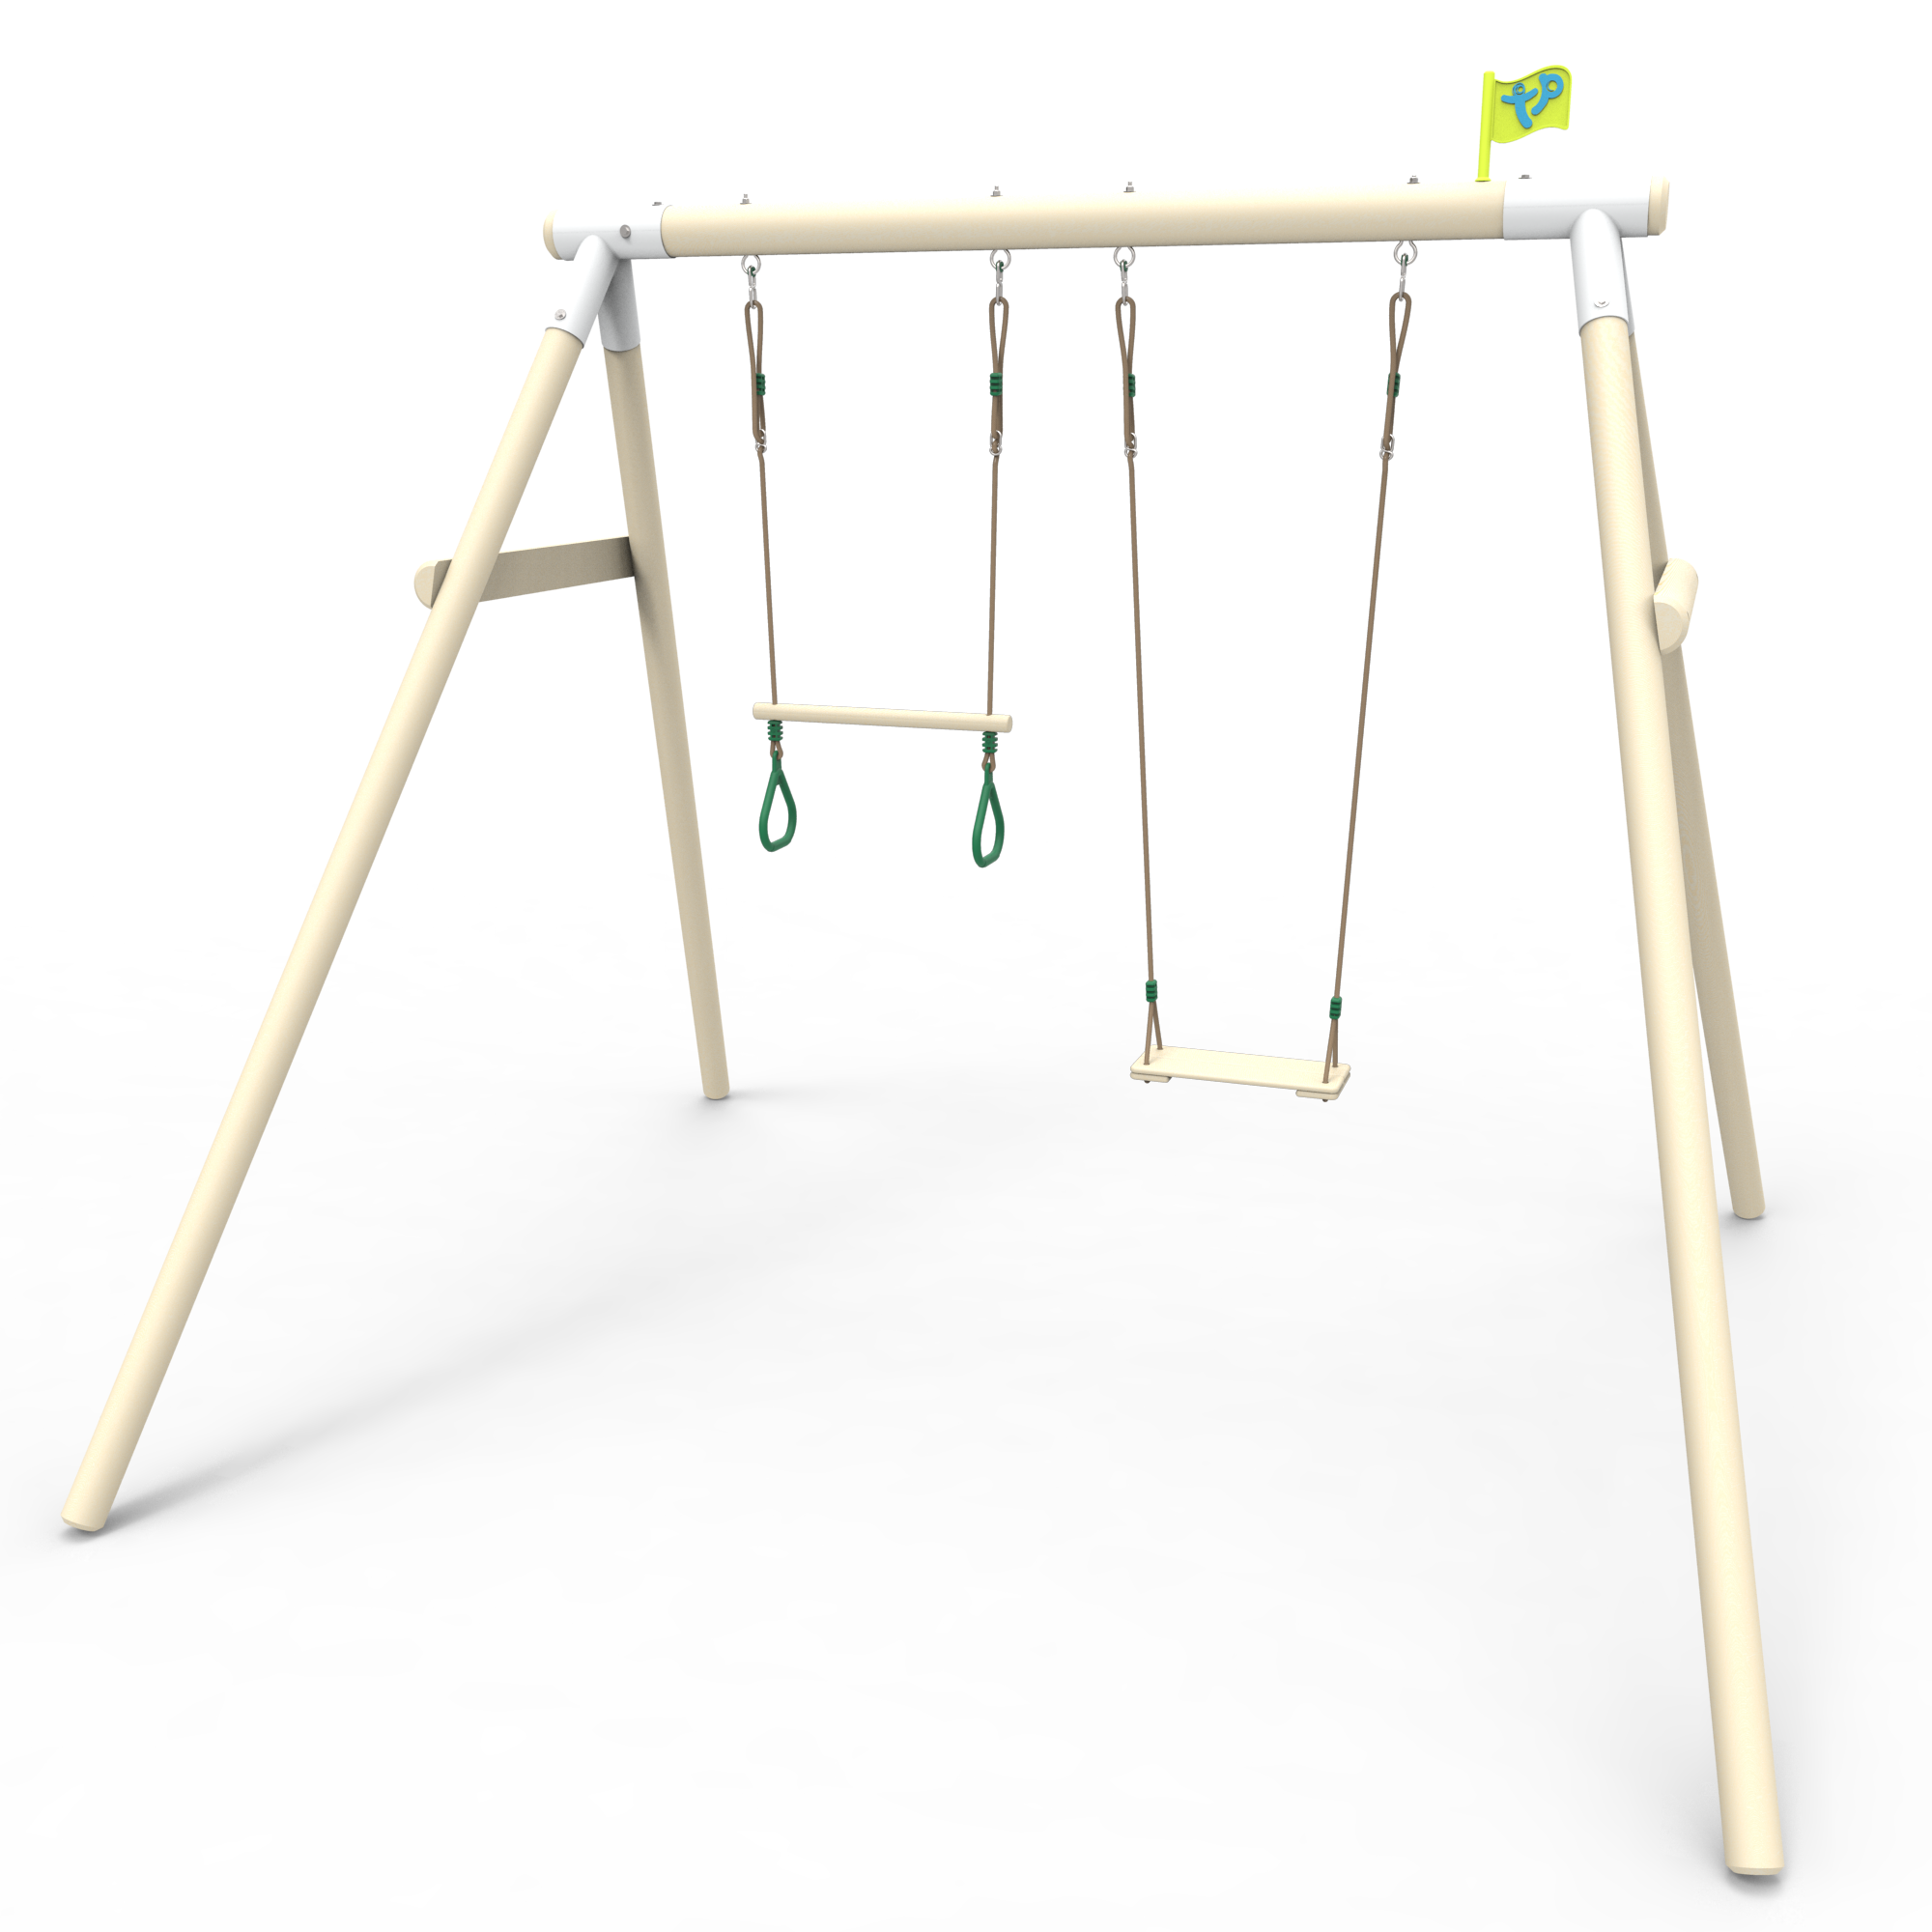 Tp Double Round Wood Swing Set With Wooden The Tp